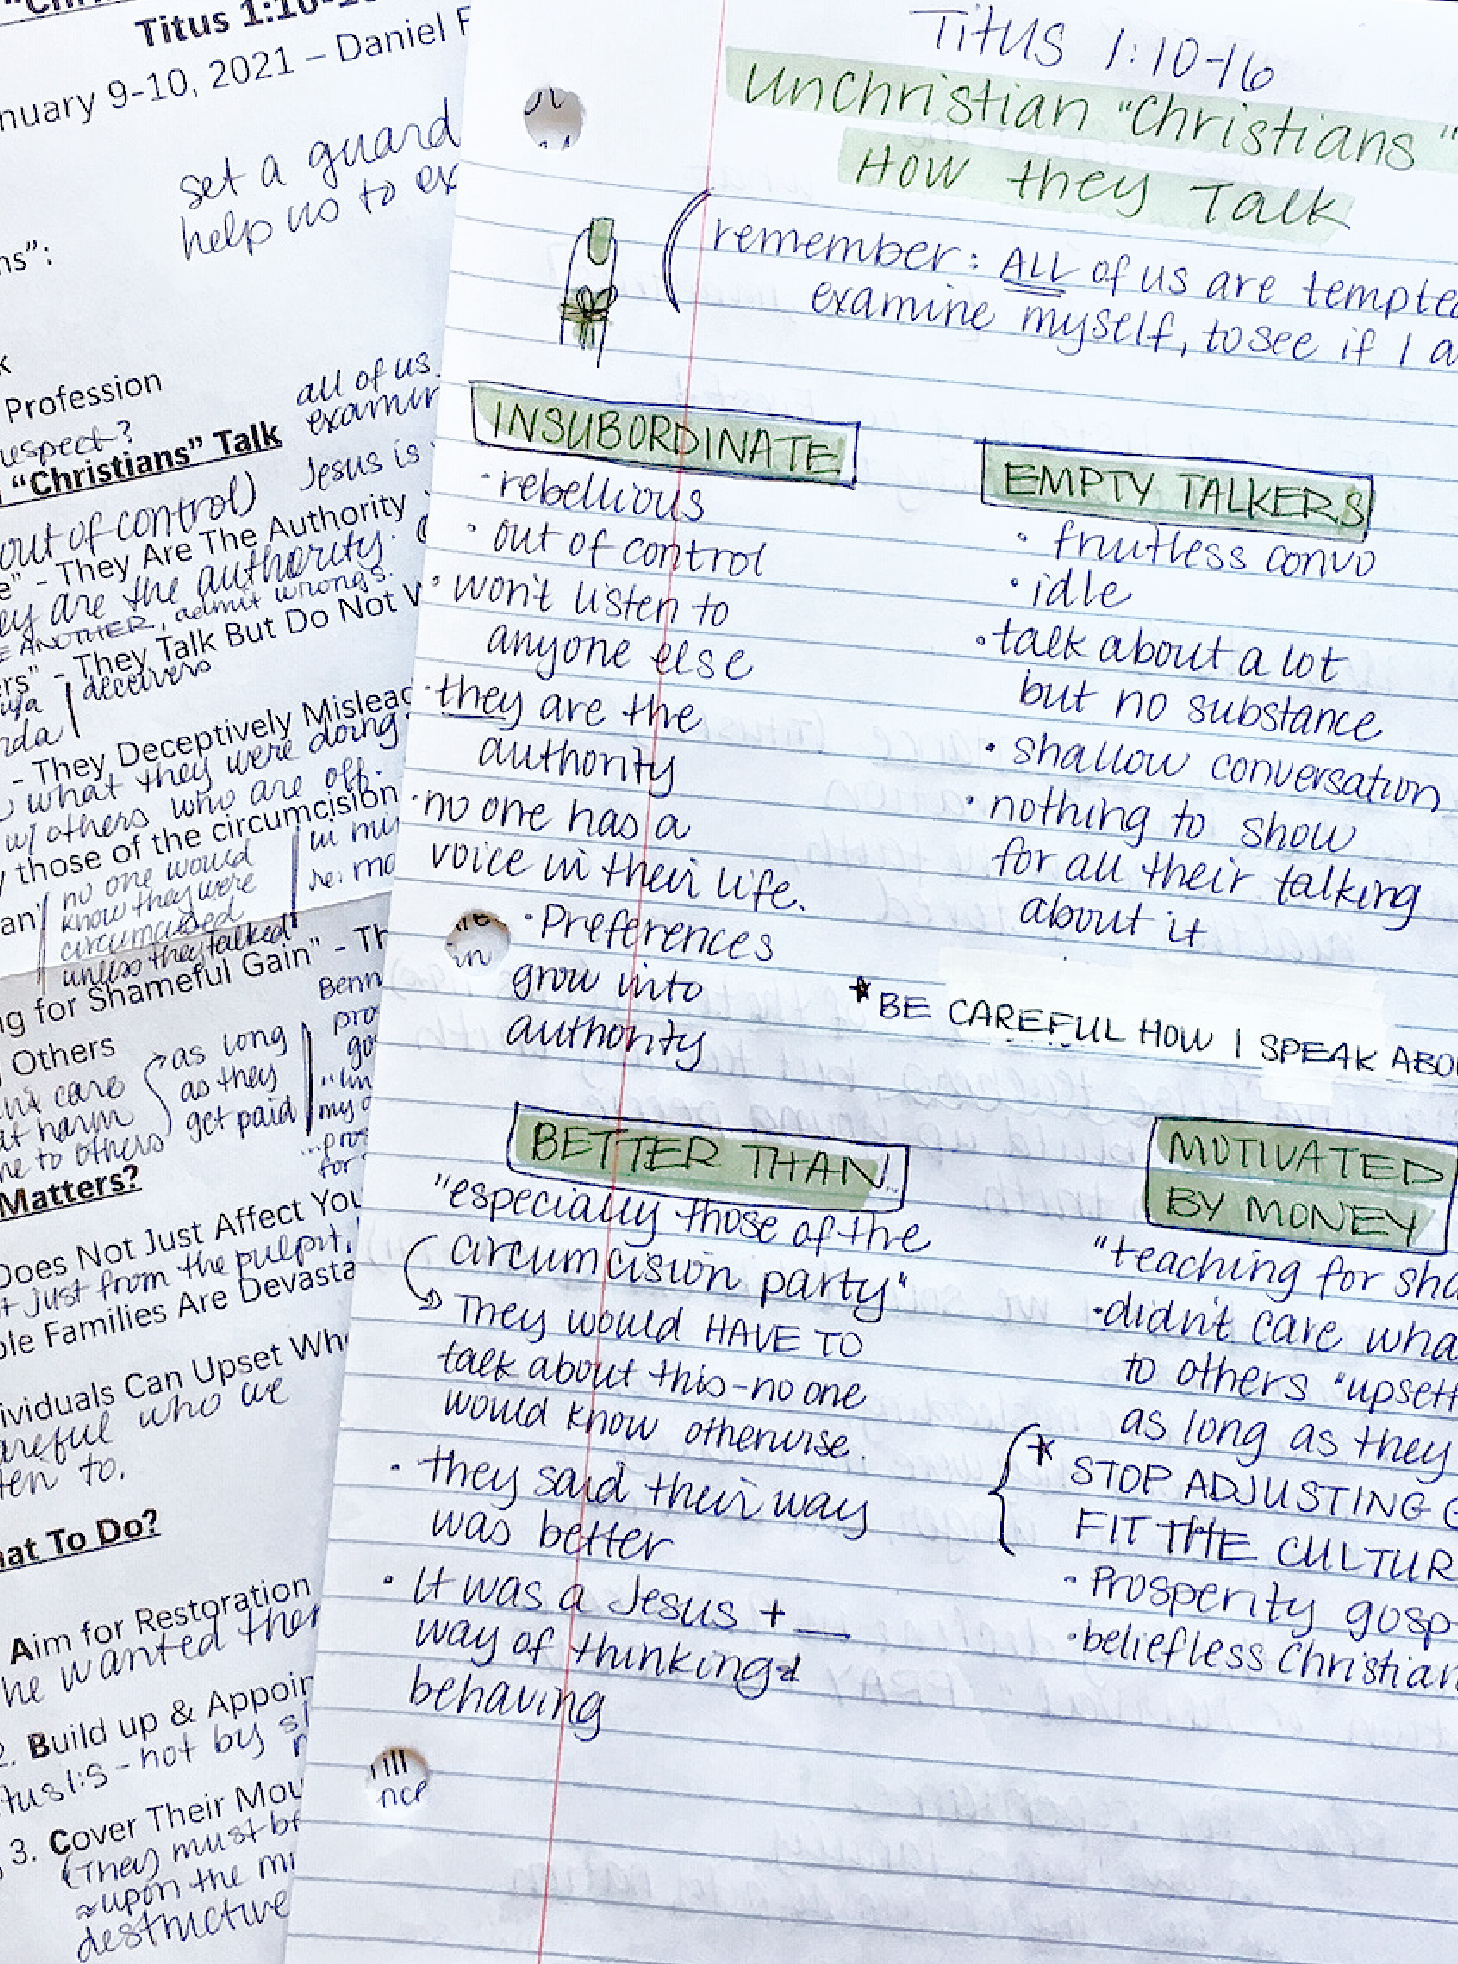 sermon notes – unChrisitan Christians-how they talk